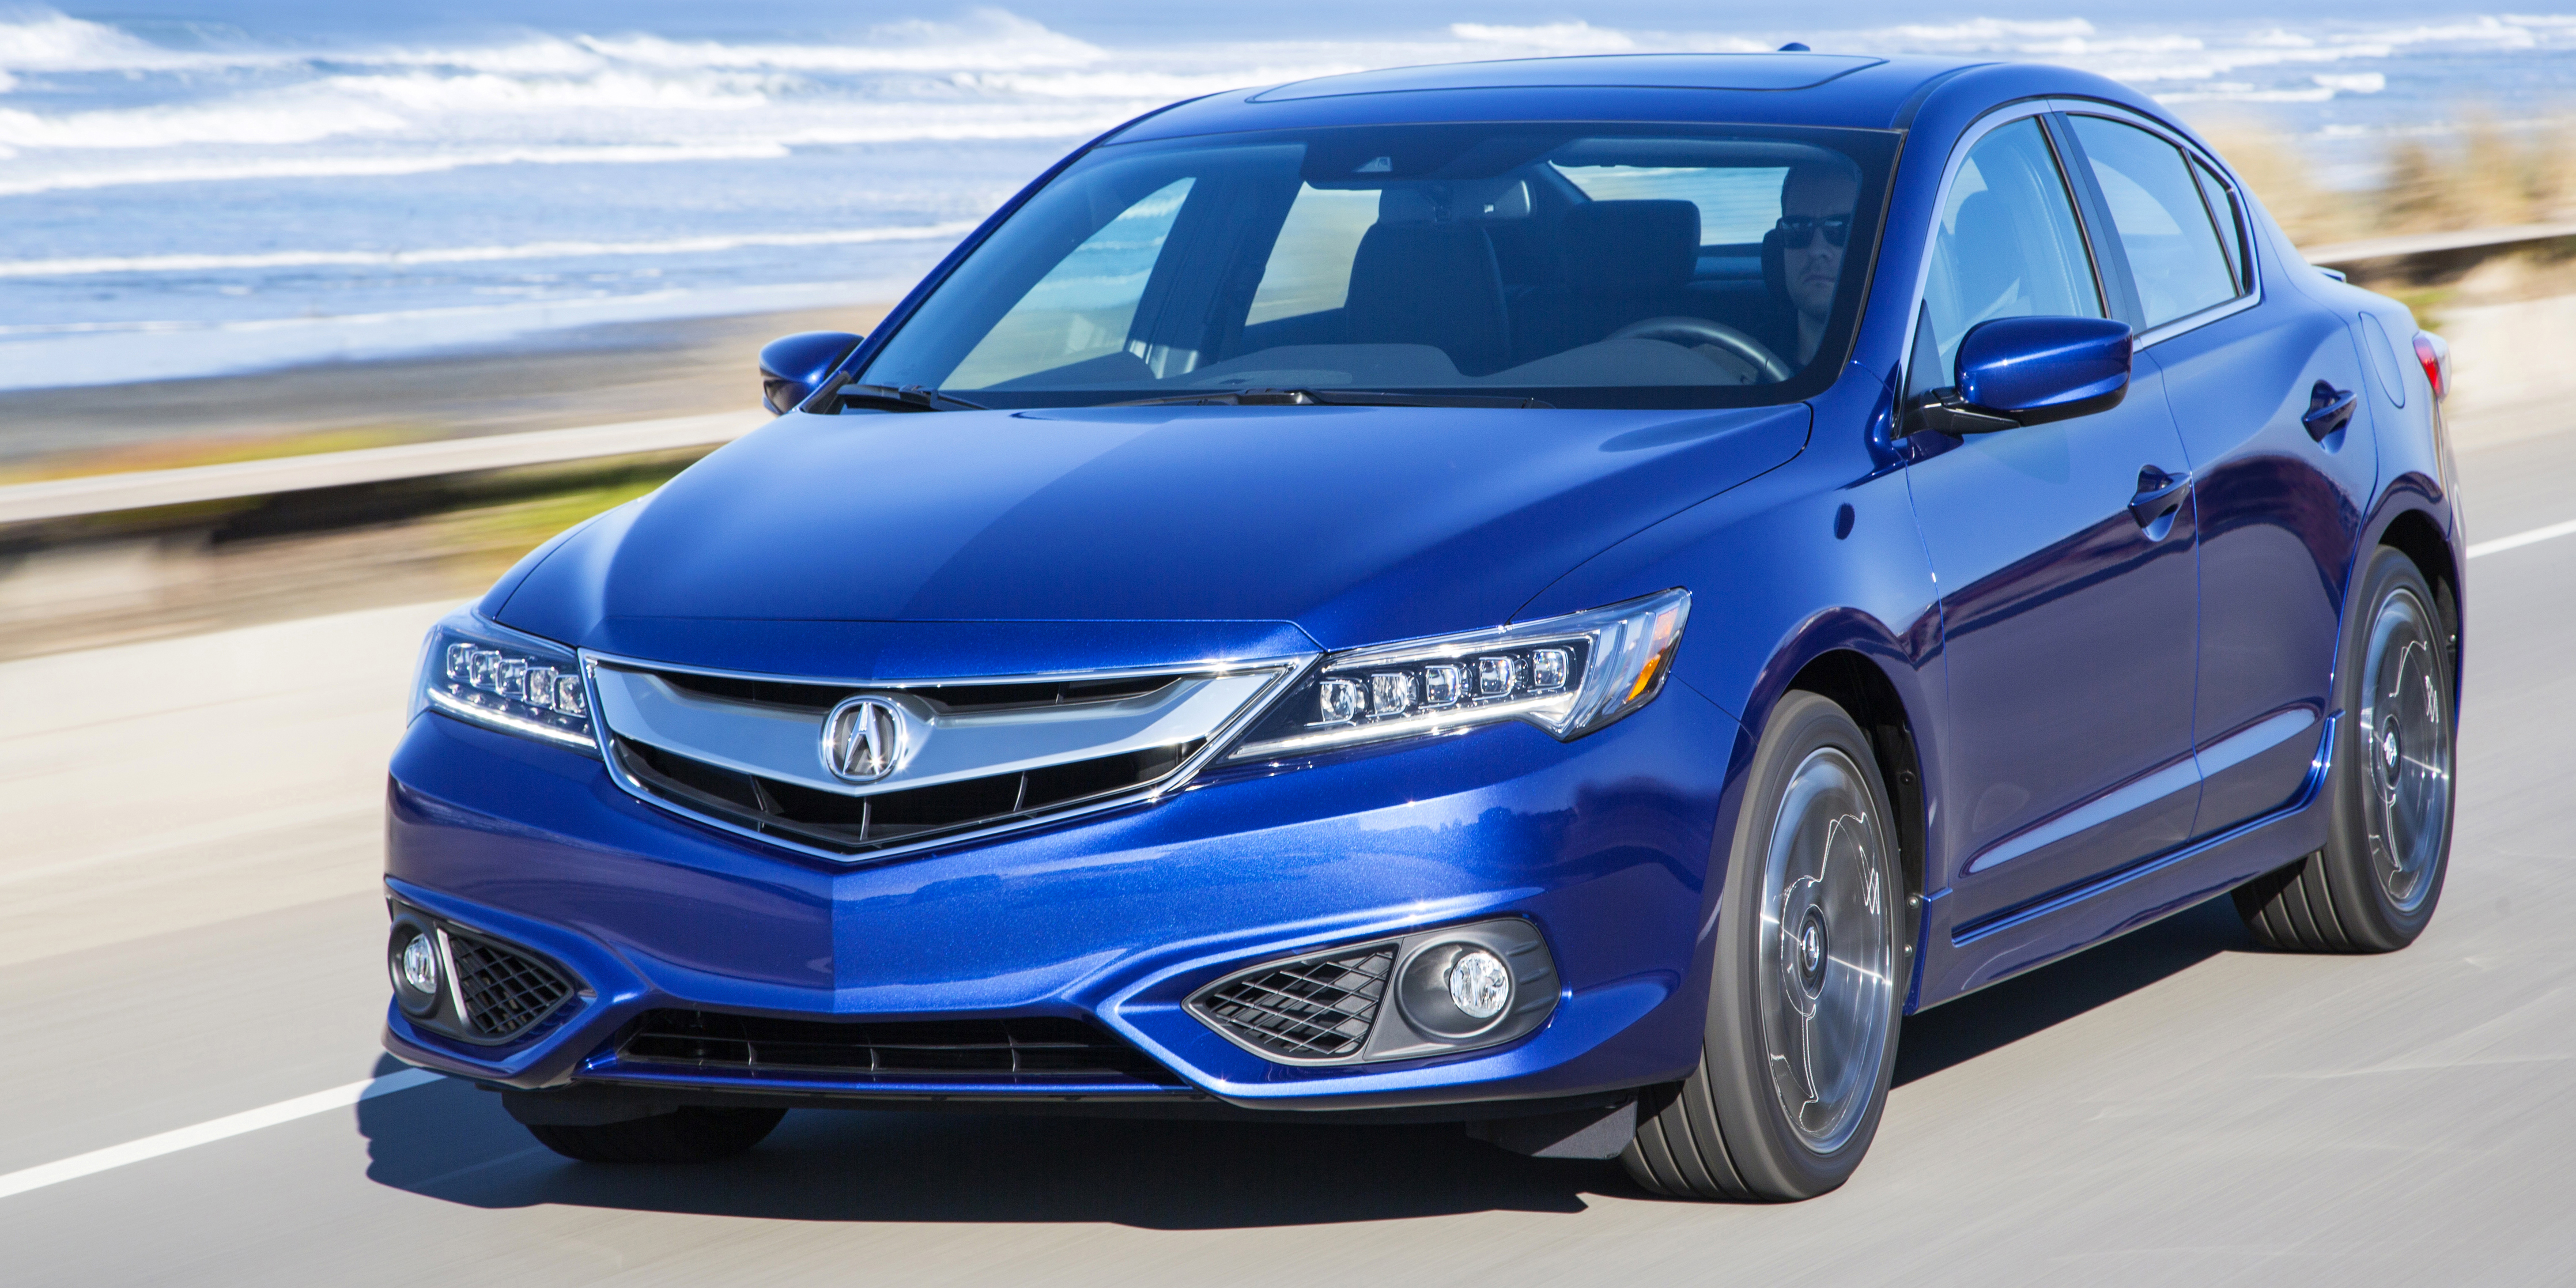 First Drive: 2016 Acura ILX